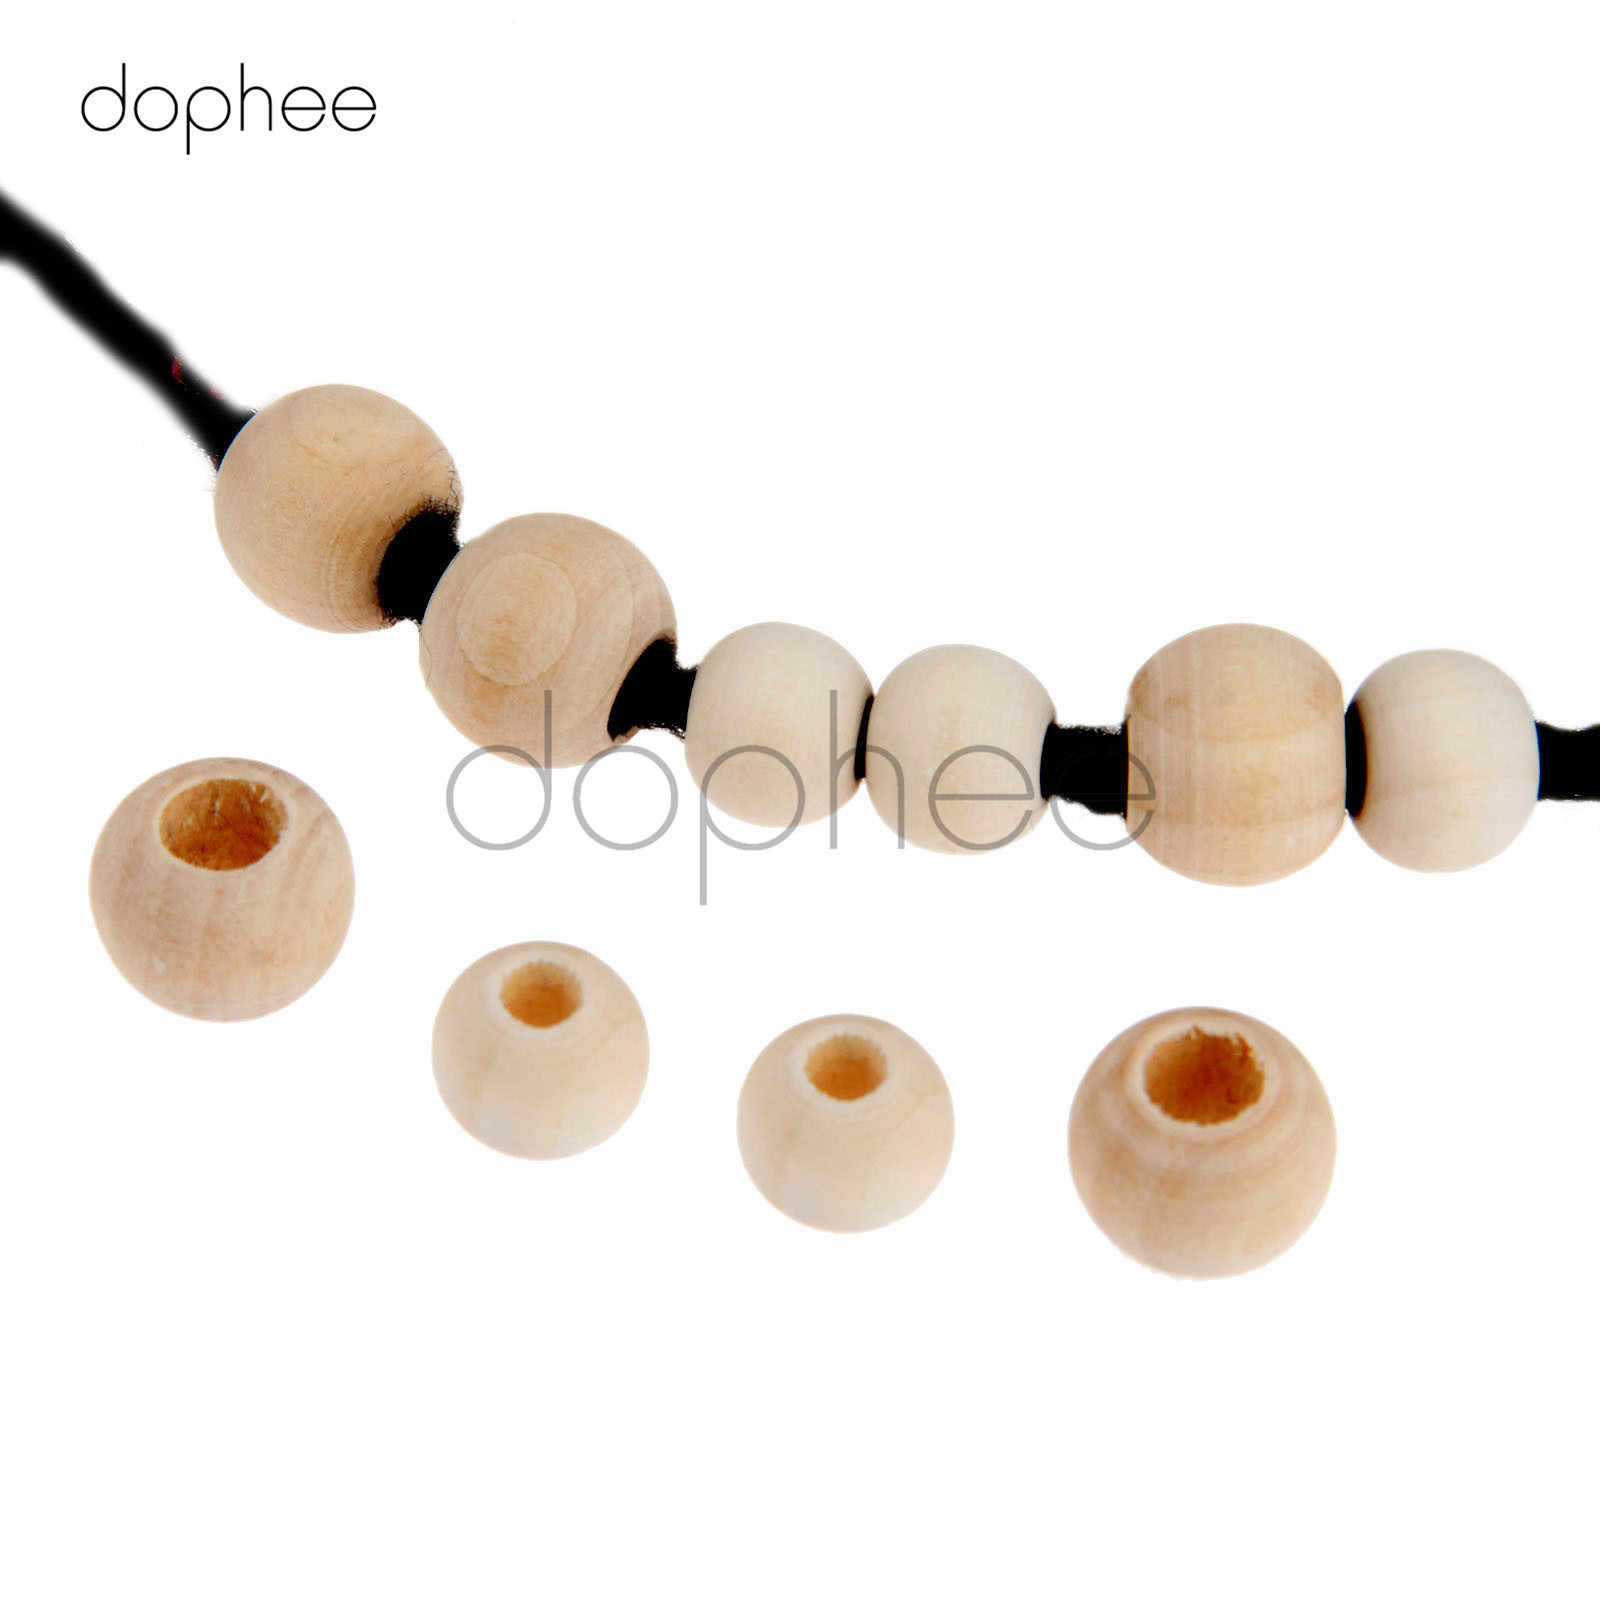 dophee 100pcs 9*10mm/11*12mm Natural Flat Round Wooden Beads Big Hole For Artwork Necklace Making Garment Decoration